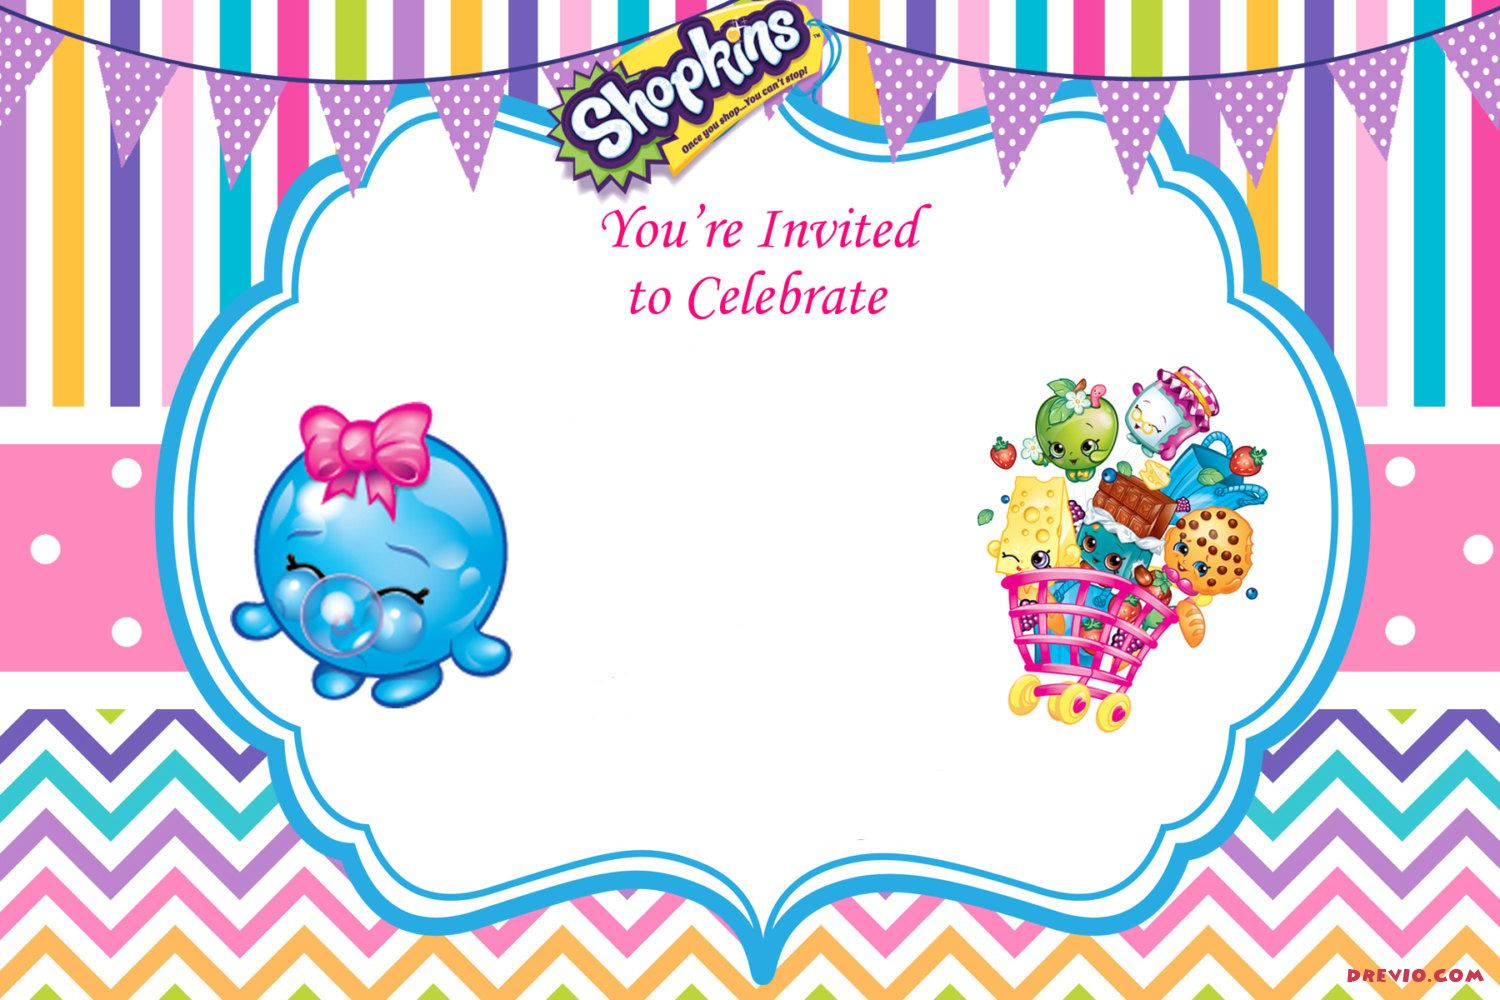 image regarding Free Printable Shopkins Invitations referred to as Up-to-date - Totally free Printable Shopkins Birthday Invitation